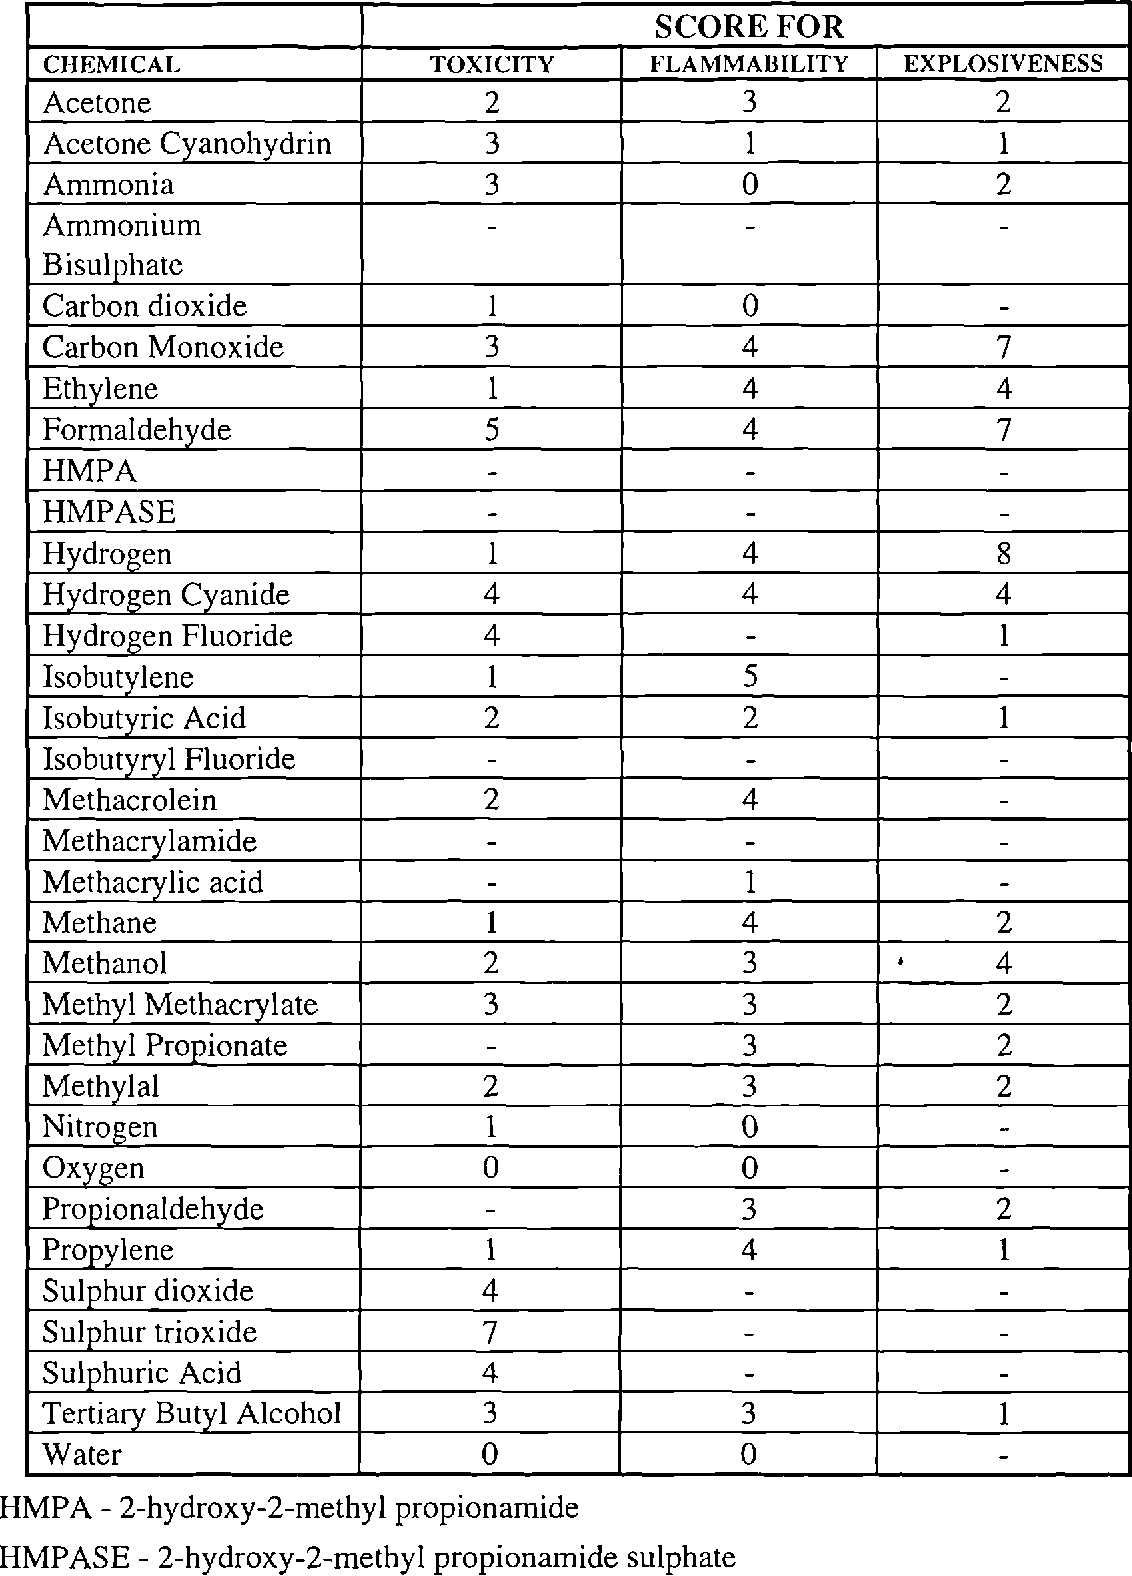 Table 4.9 - Breakdown of chemical score for each chemical in MMA routes